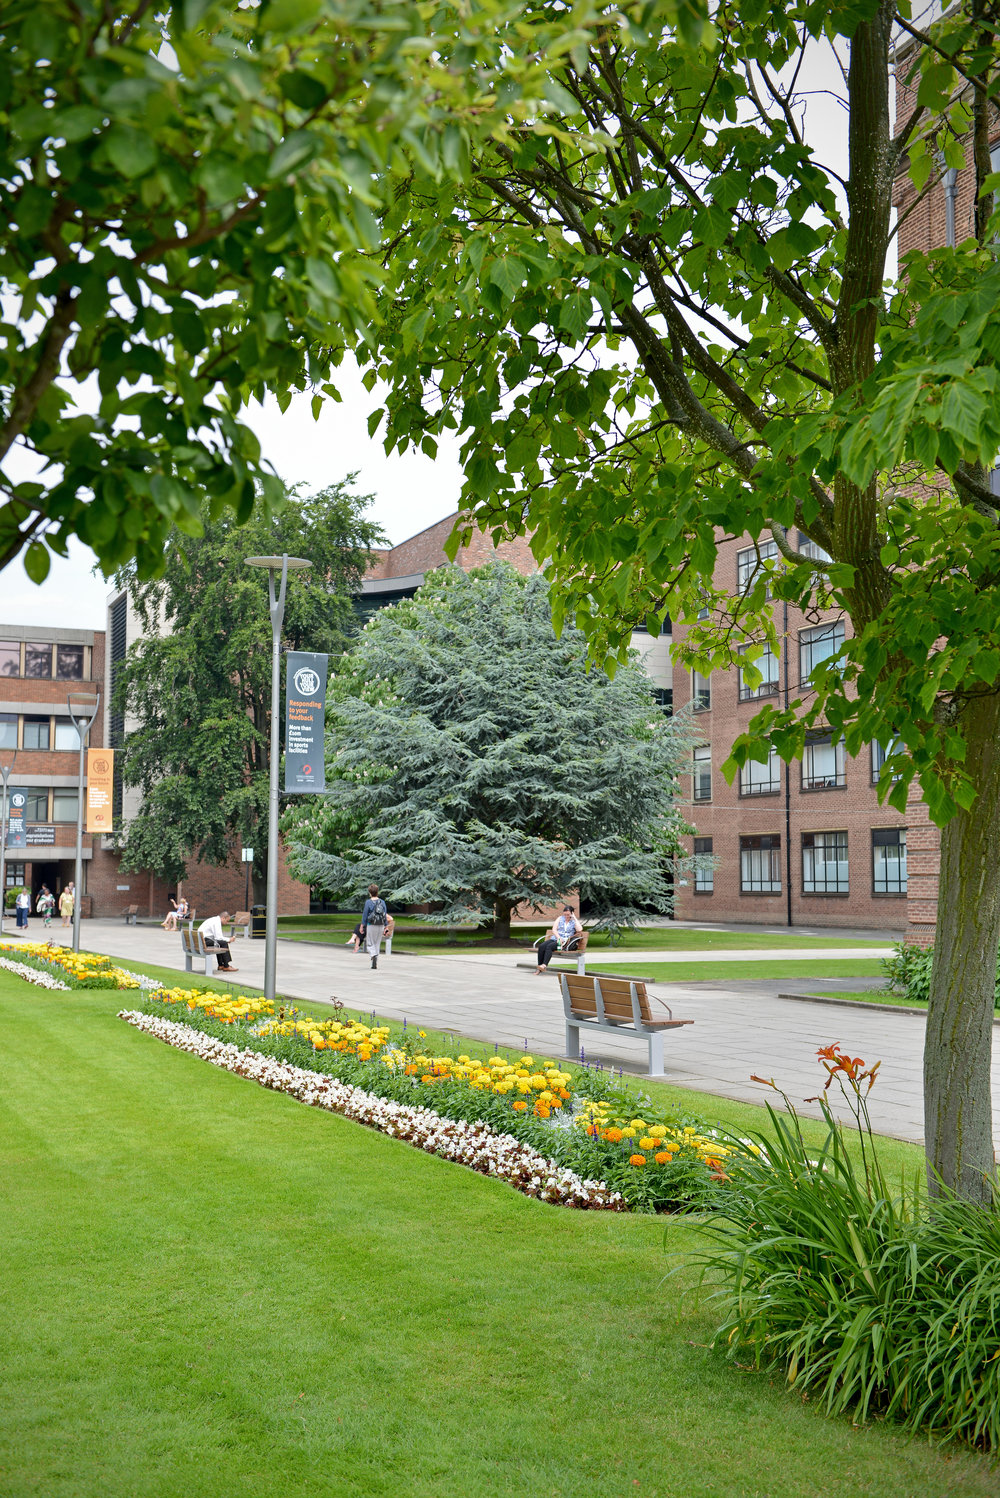 Campus Walkway with Trees and Flowerbeds Portrait UNI_6230.jpg